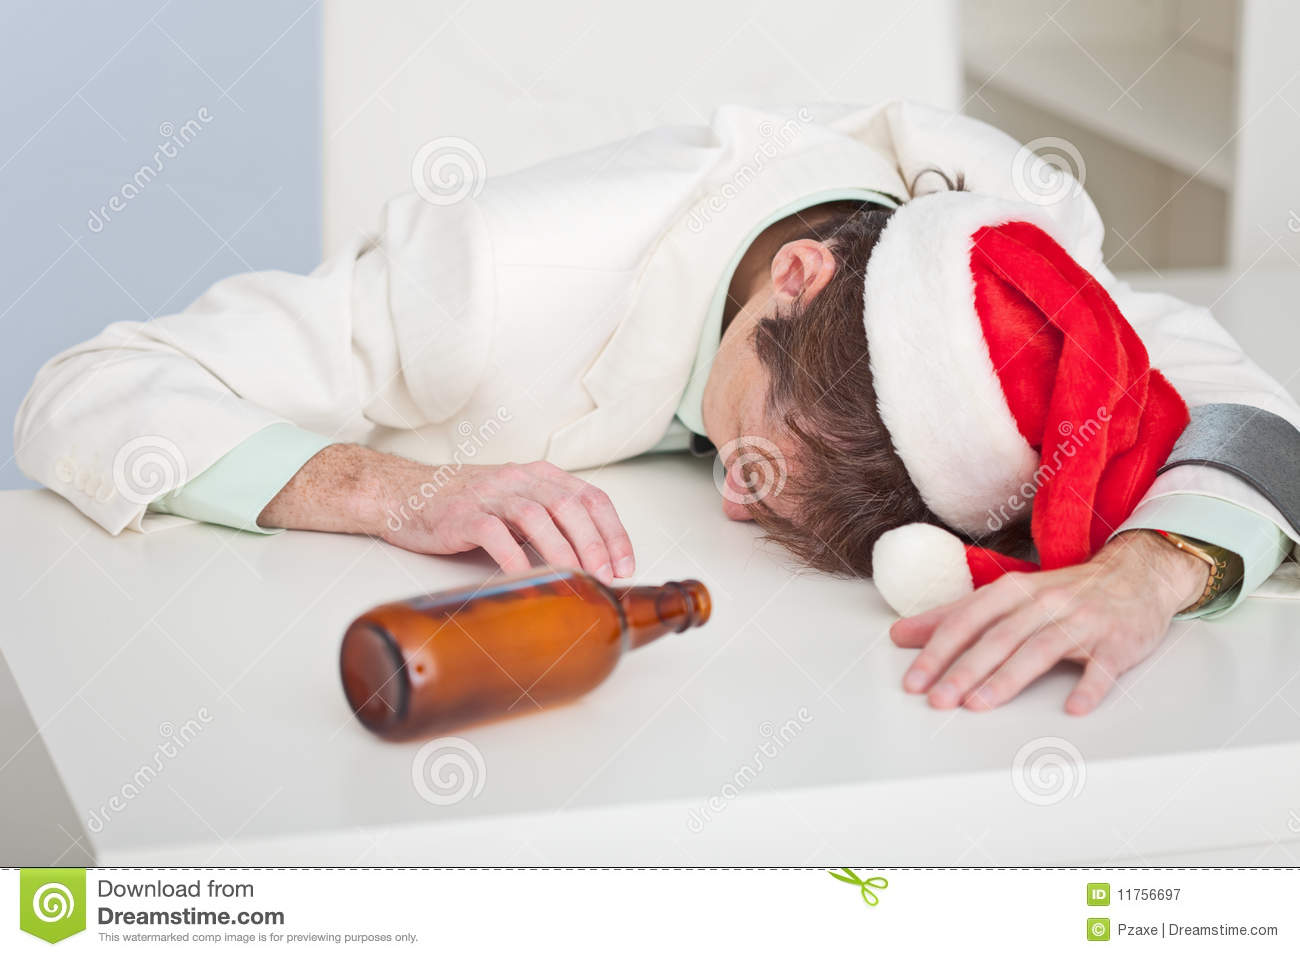 Drunk Person Lies On Table Royalty Free Stock Photography